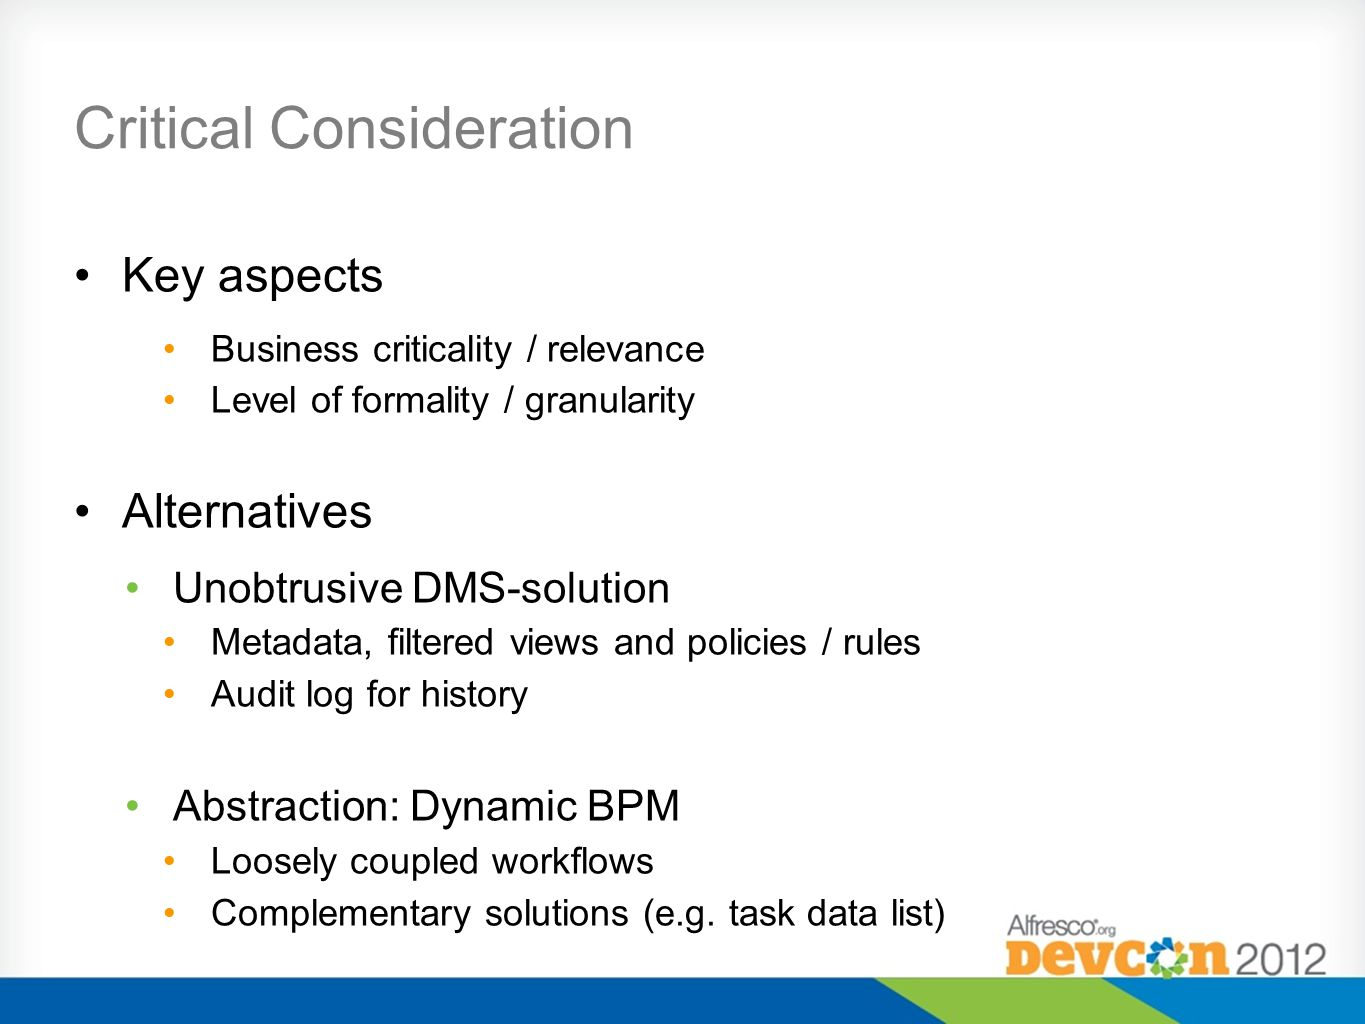 Critical Consideration Key aspects Business criticality / relevance Level of formality / granularity Alternatives Unobtrusive DMS-solution Metadata, filtered views and policies / rules Audit log for history Abstraction: Dynamic BPM Loosely coupled workflows Complementary solutions (e.g.